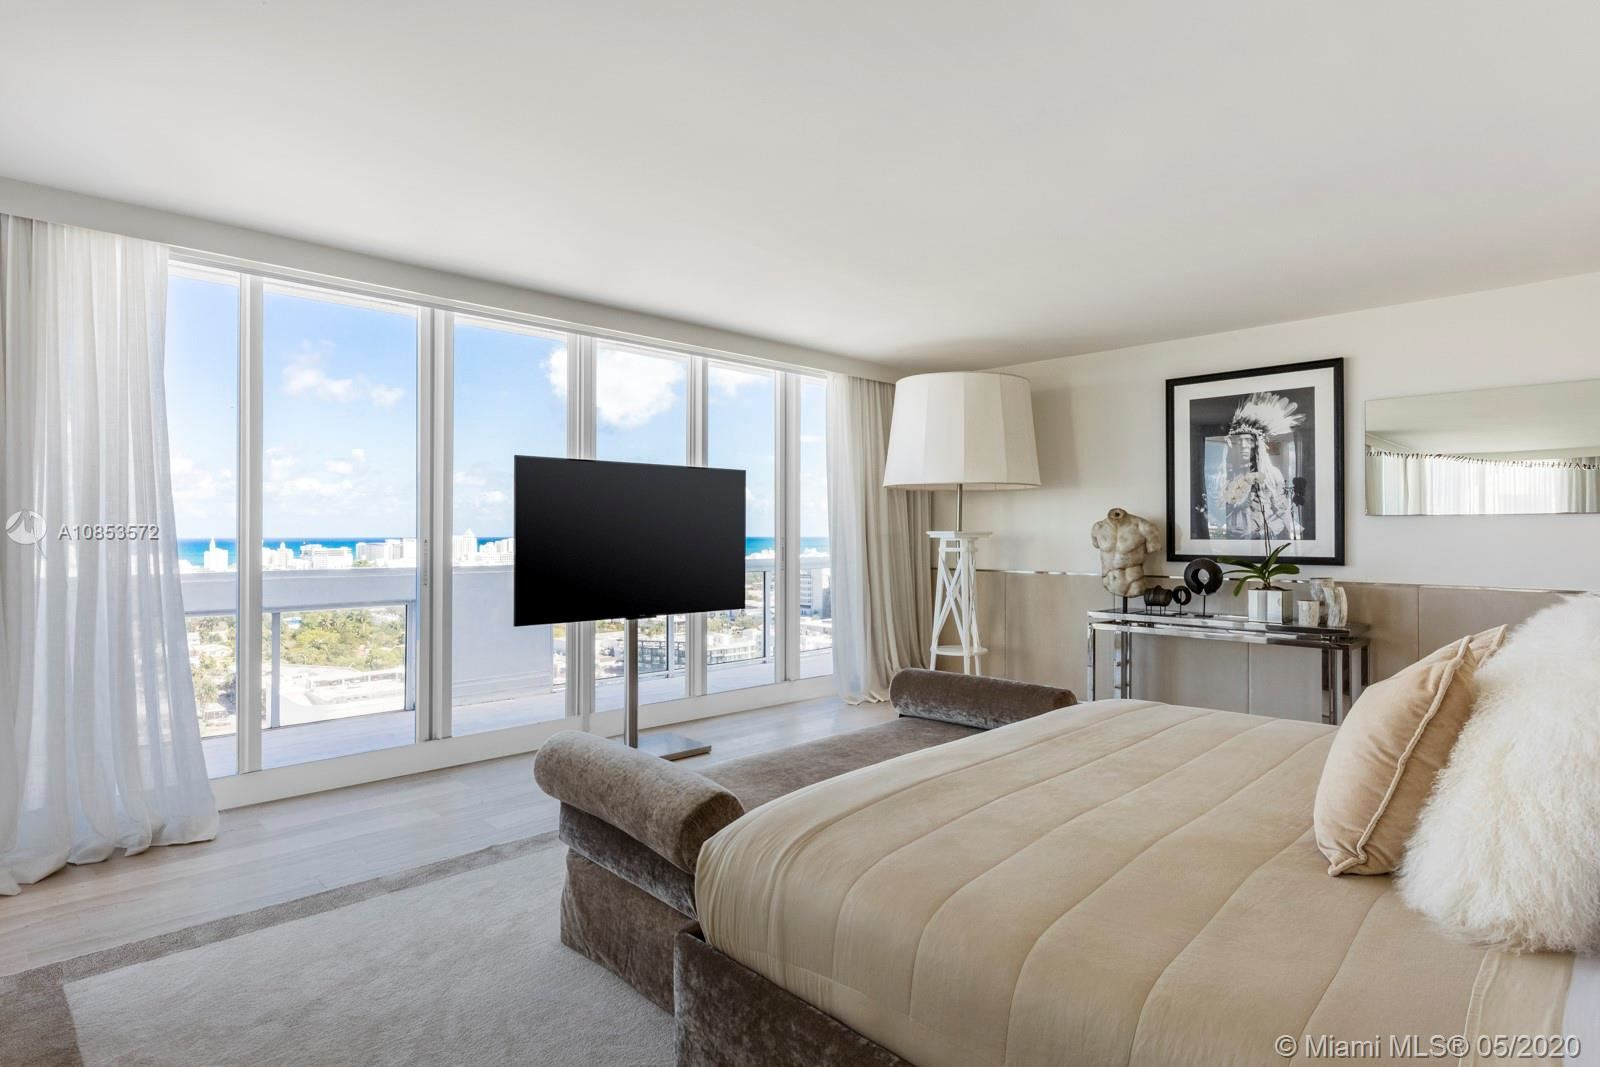 Photo 17 of Listing MLS a10853572 in 1800 Sunset Harbour Dr #TS-2/3 Miami Beach FL 33139